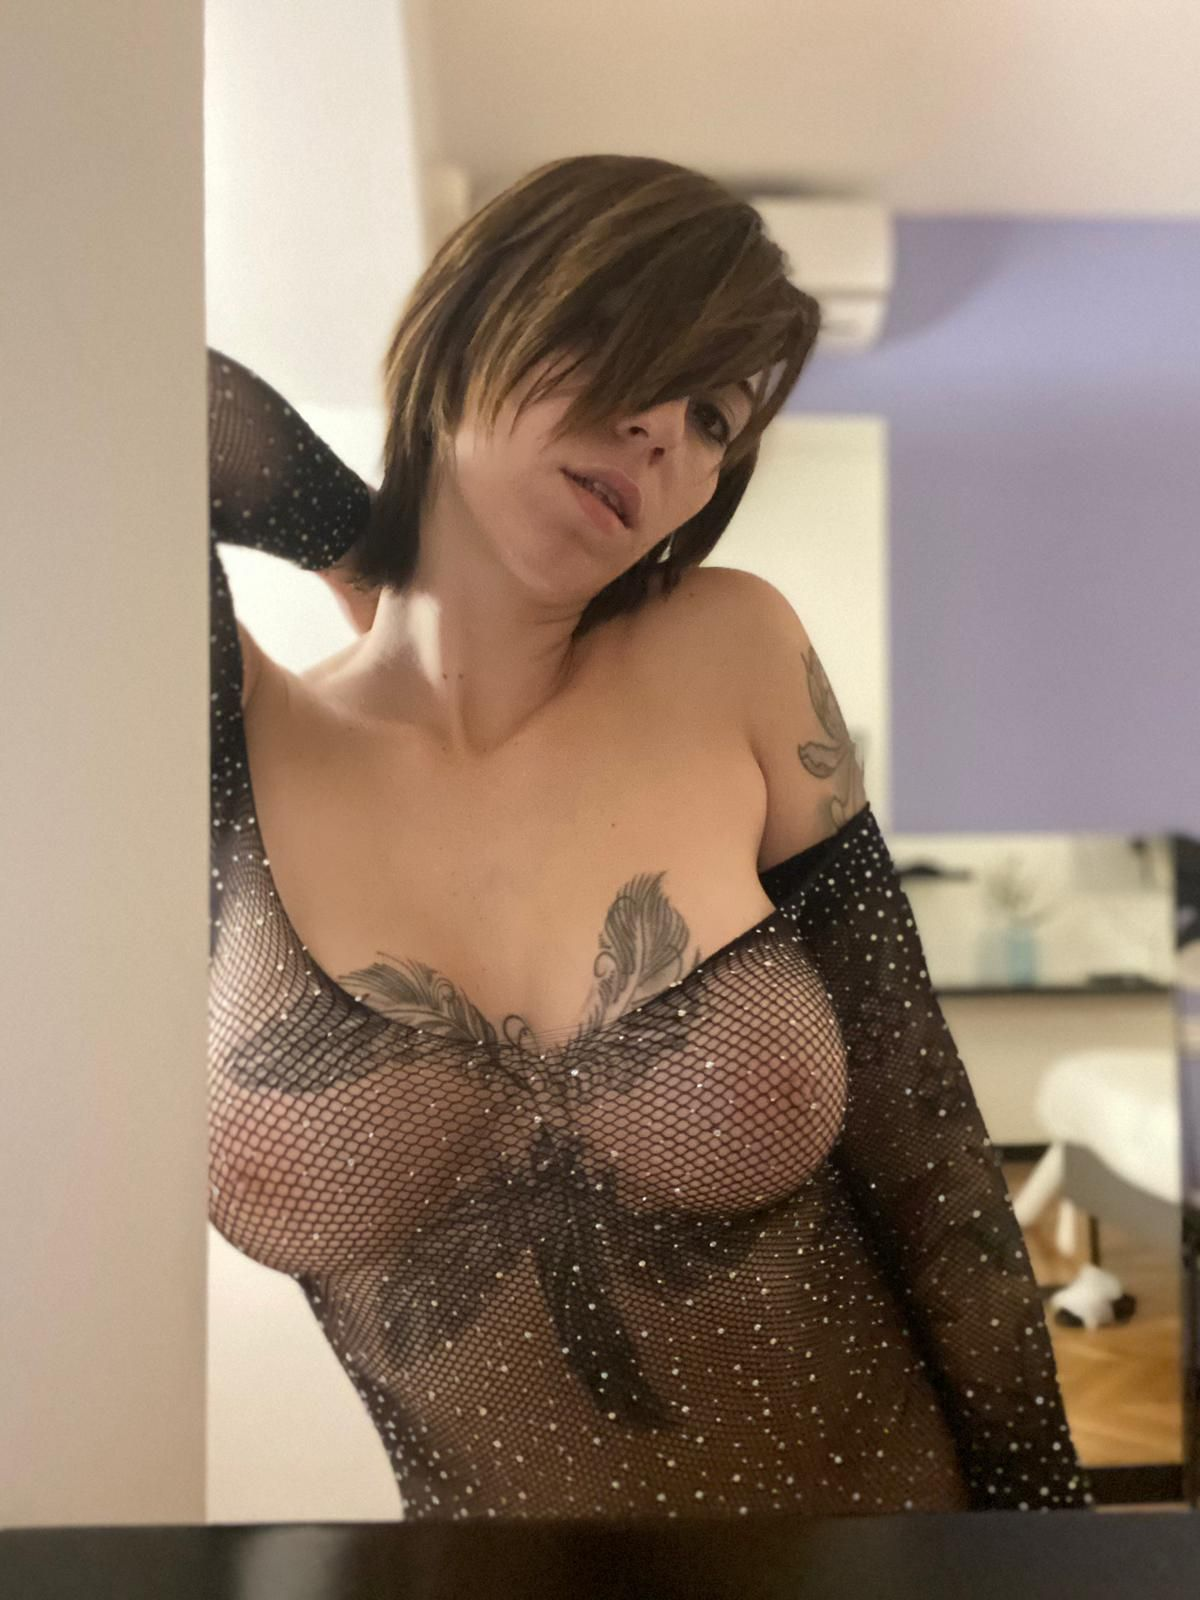 Mina photos and videos onlyfans leaked